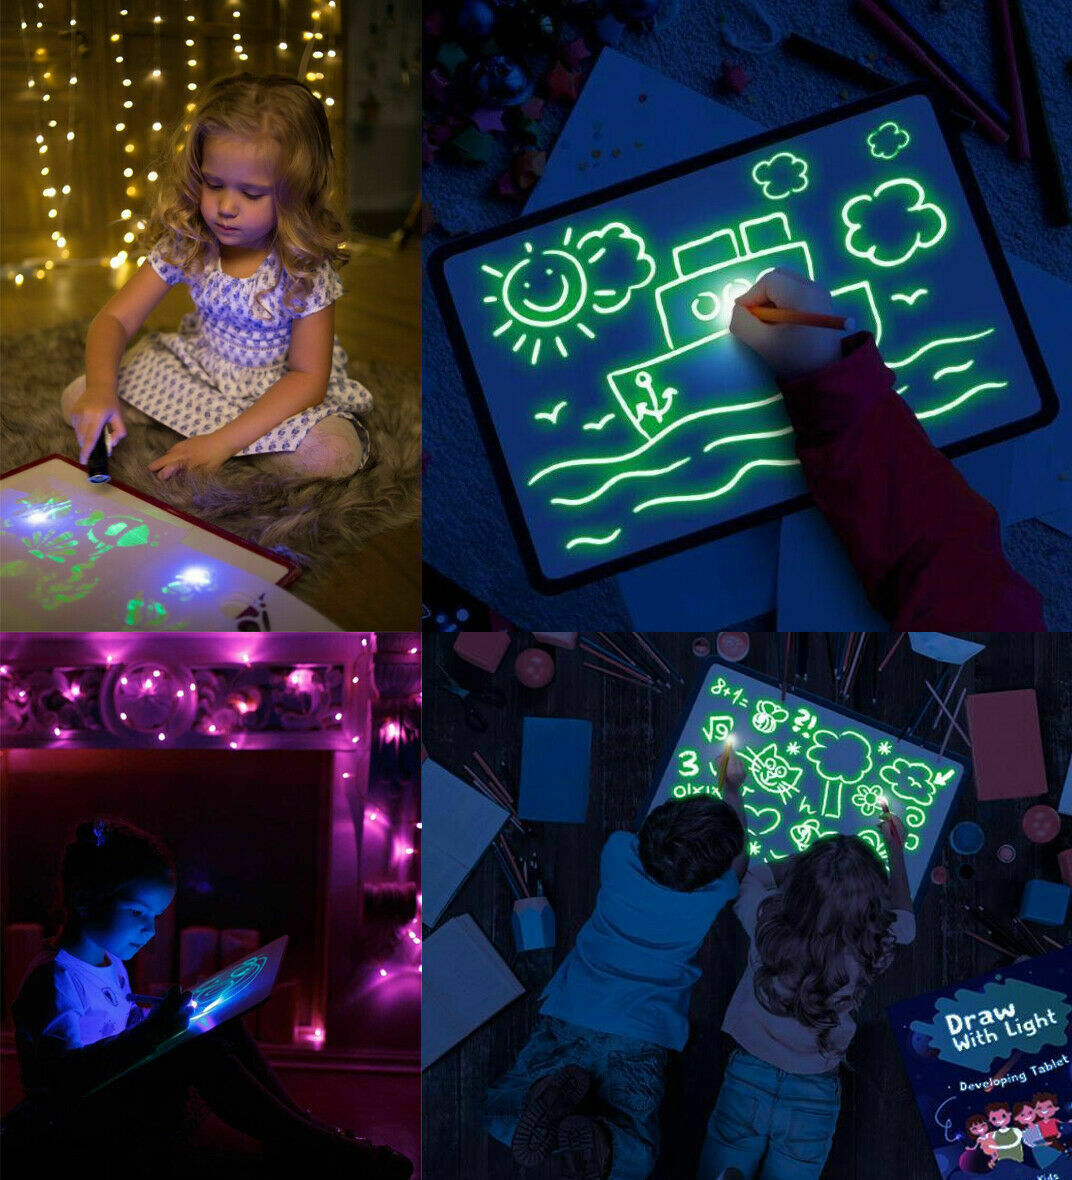 2019 Draw With Light Fun And Toy Drawing Board Magic Draw Educational Creative Home Luminous Fluorescent Handwriting Board New